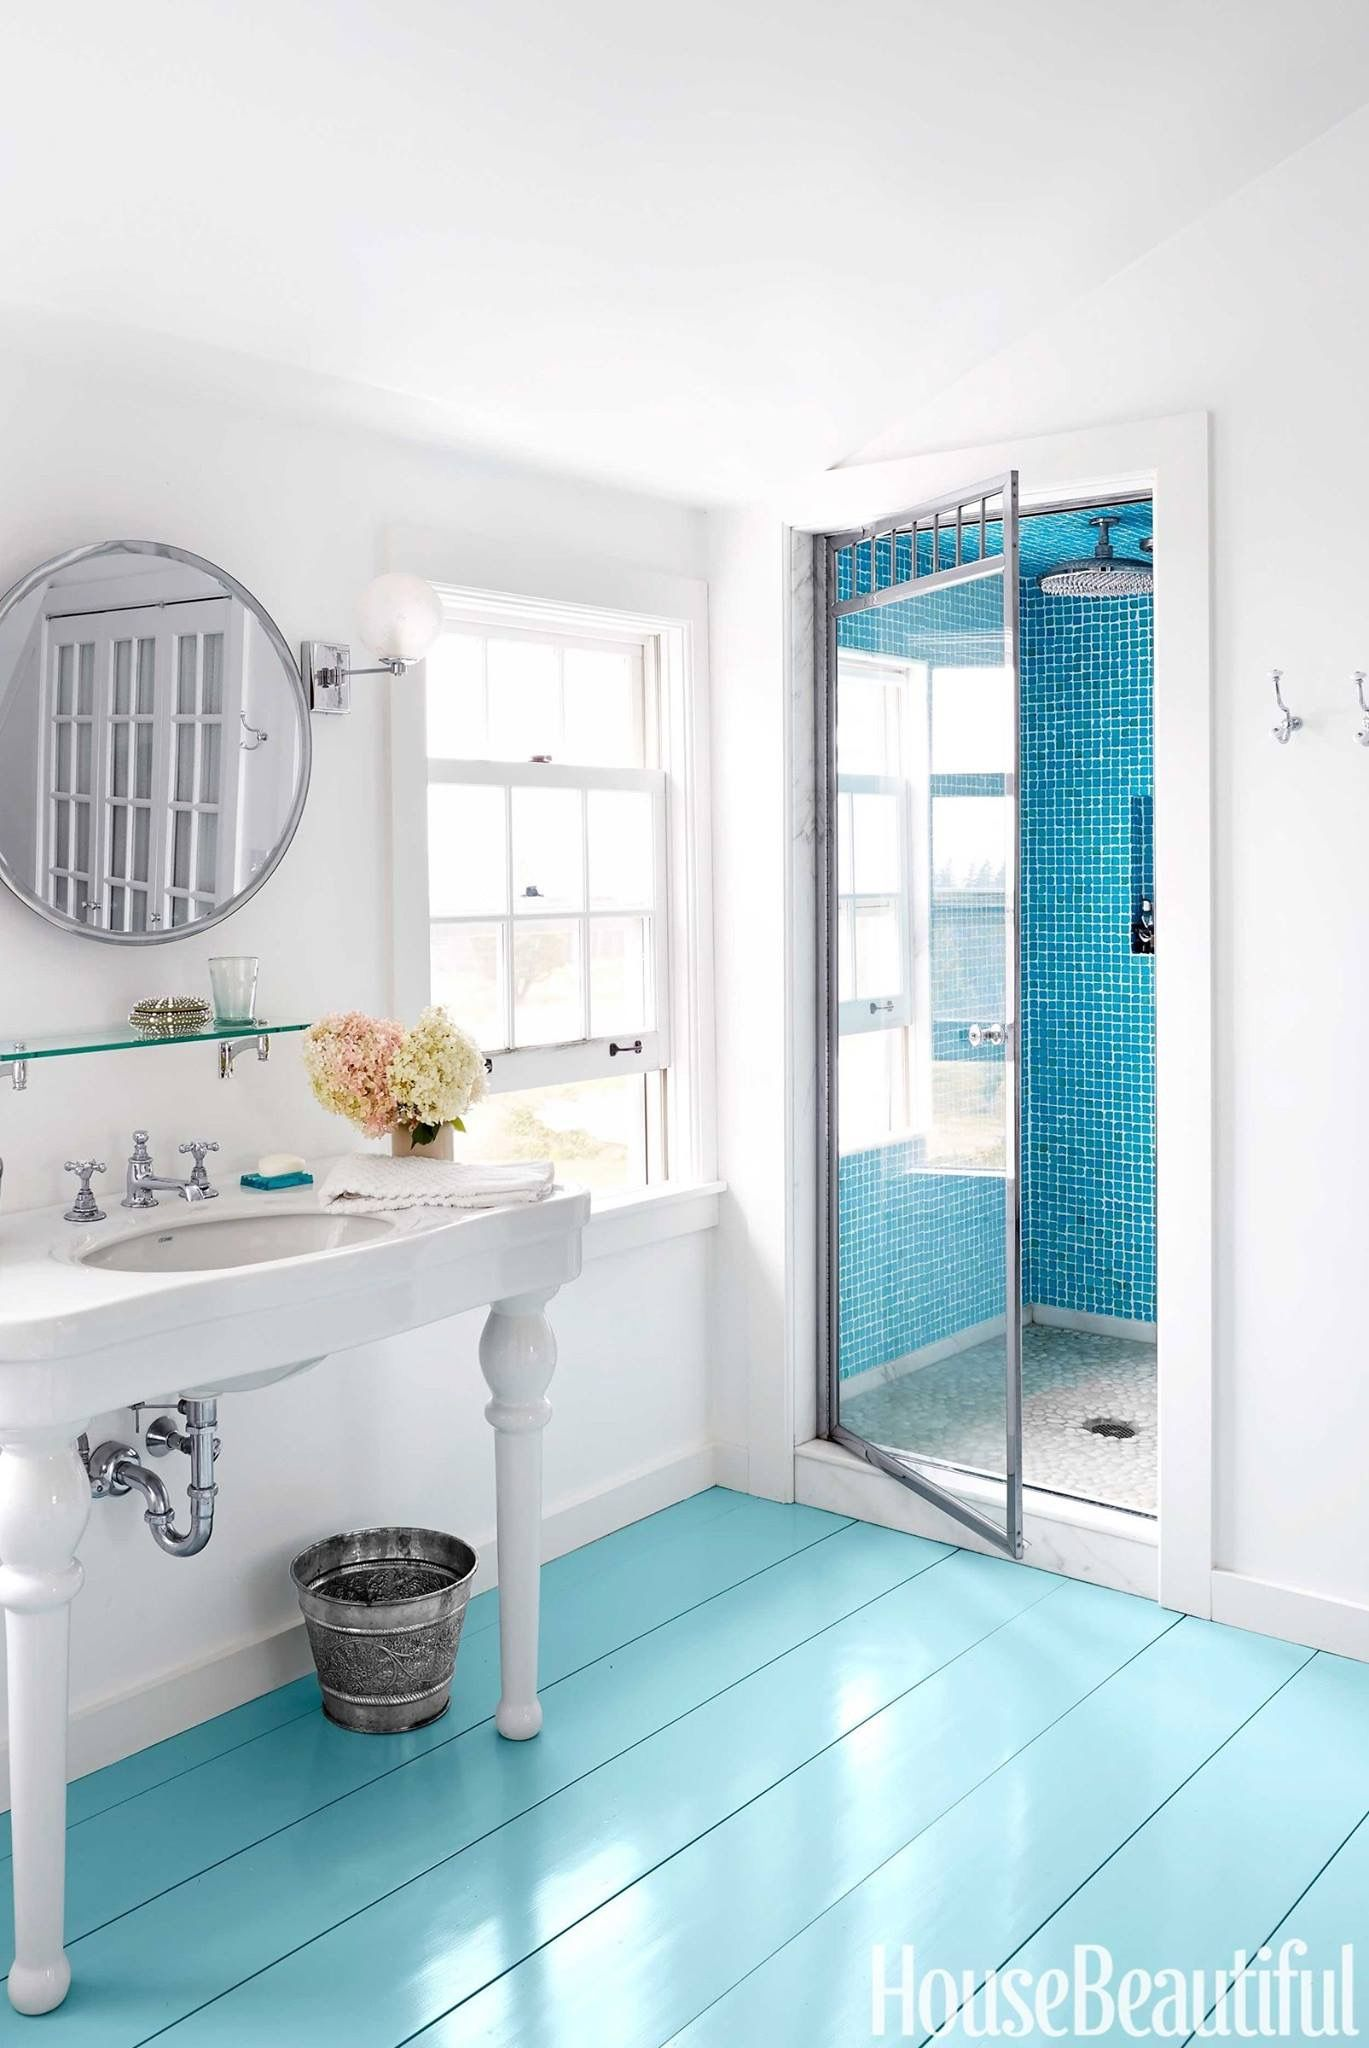 flooring ideas for small bathrooms%0A    of the most stunning painted floor ideas  You can paint your floors and  stairs with block colors  geometric patterns  stencils  murals and more